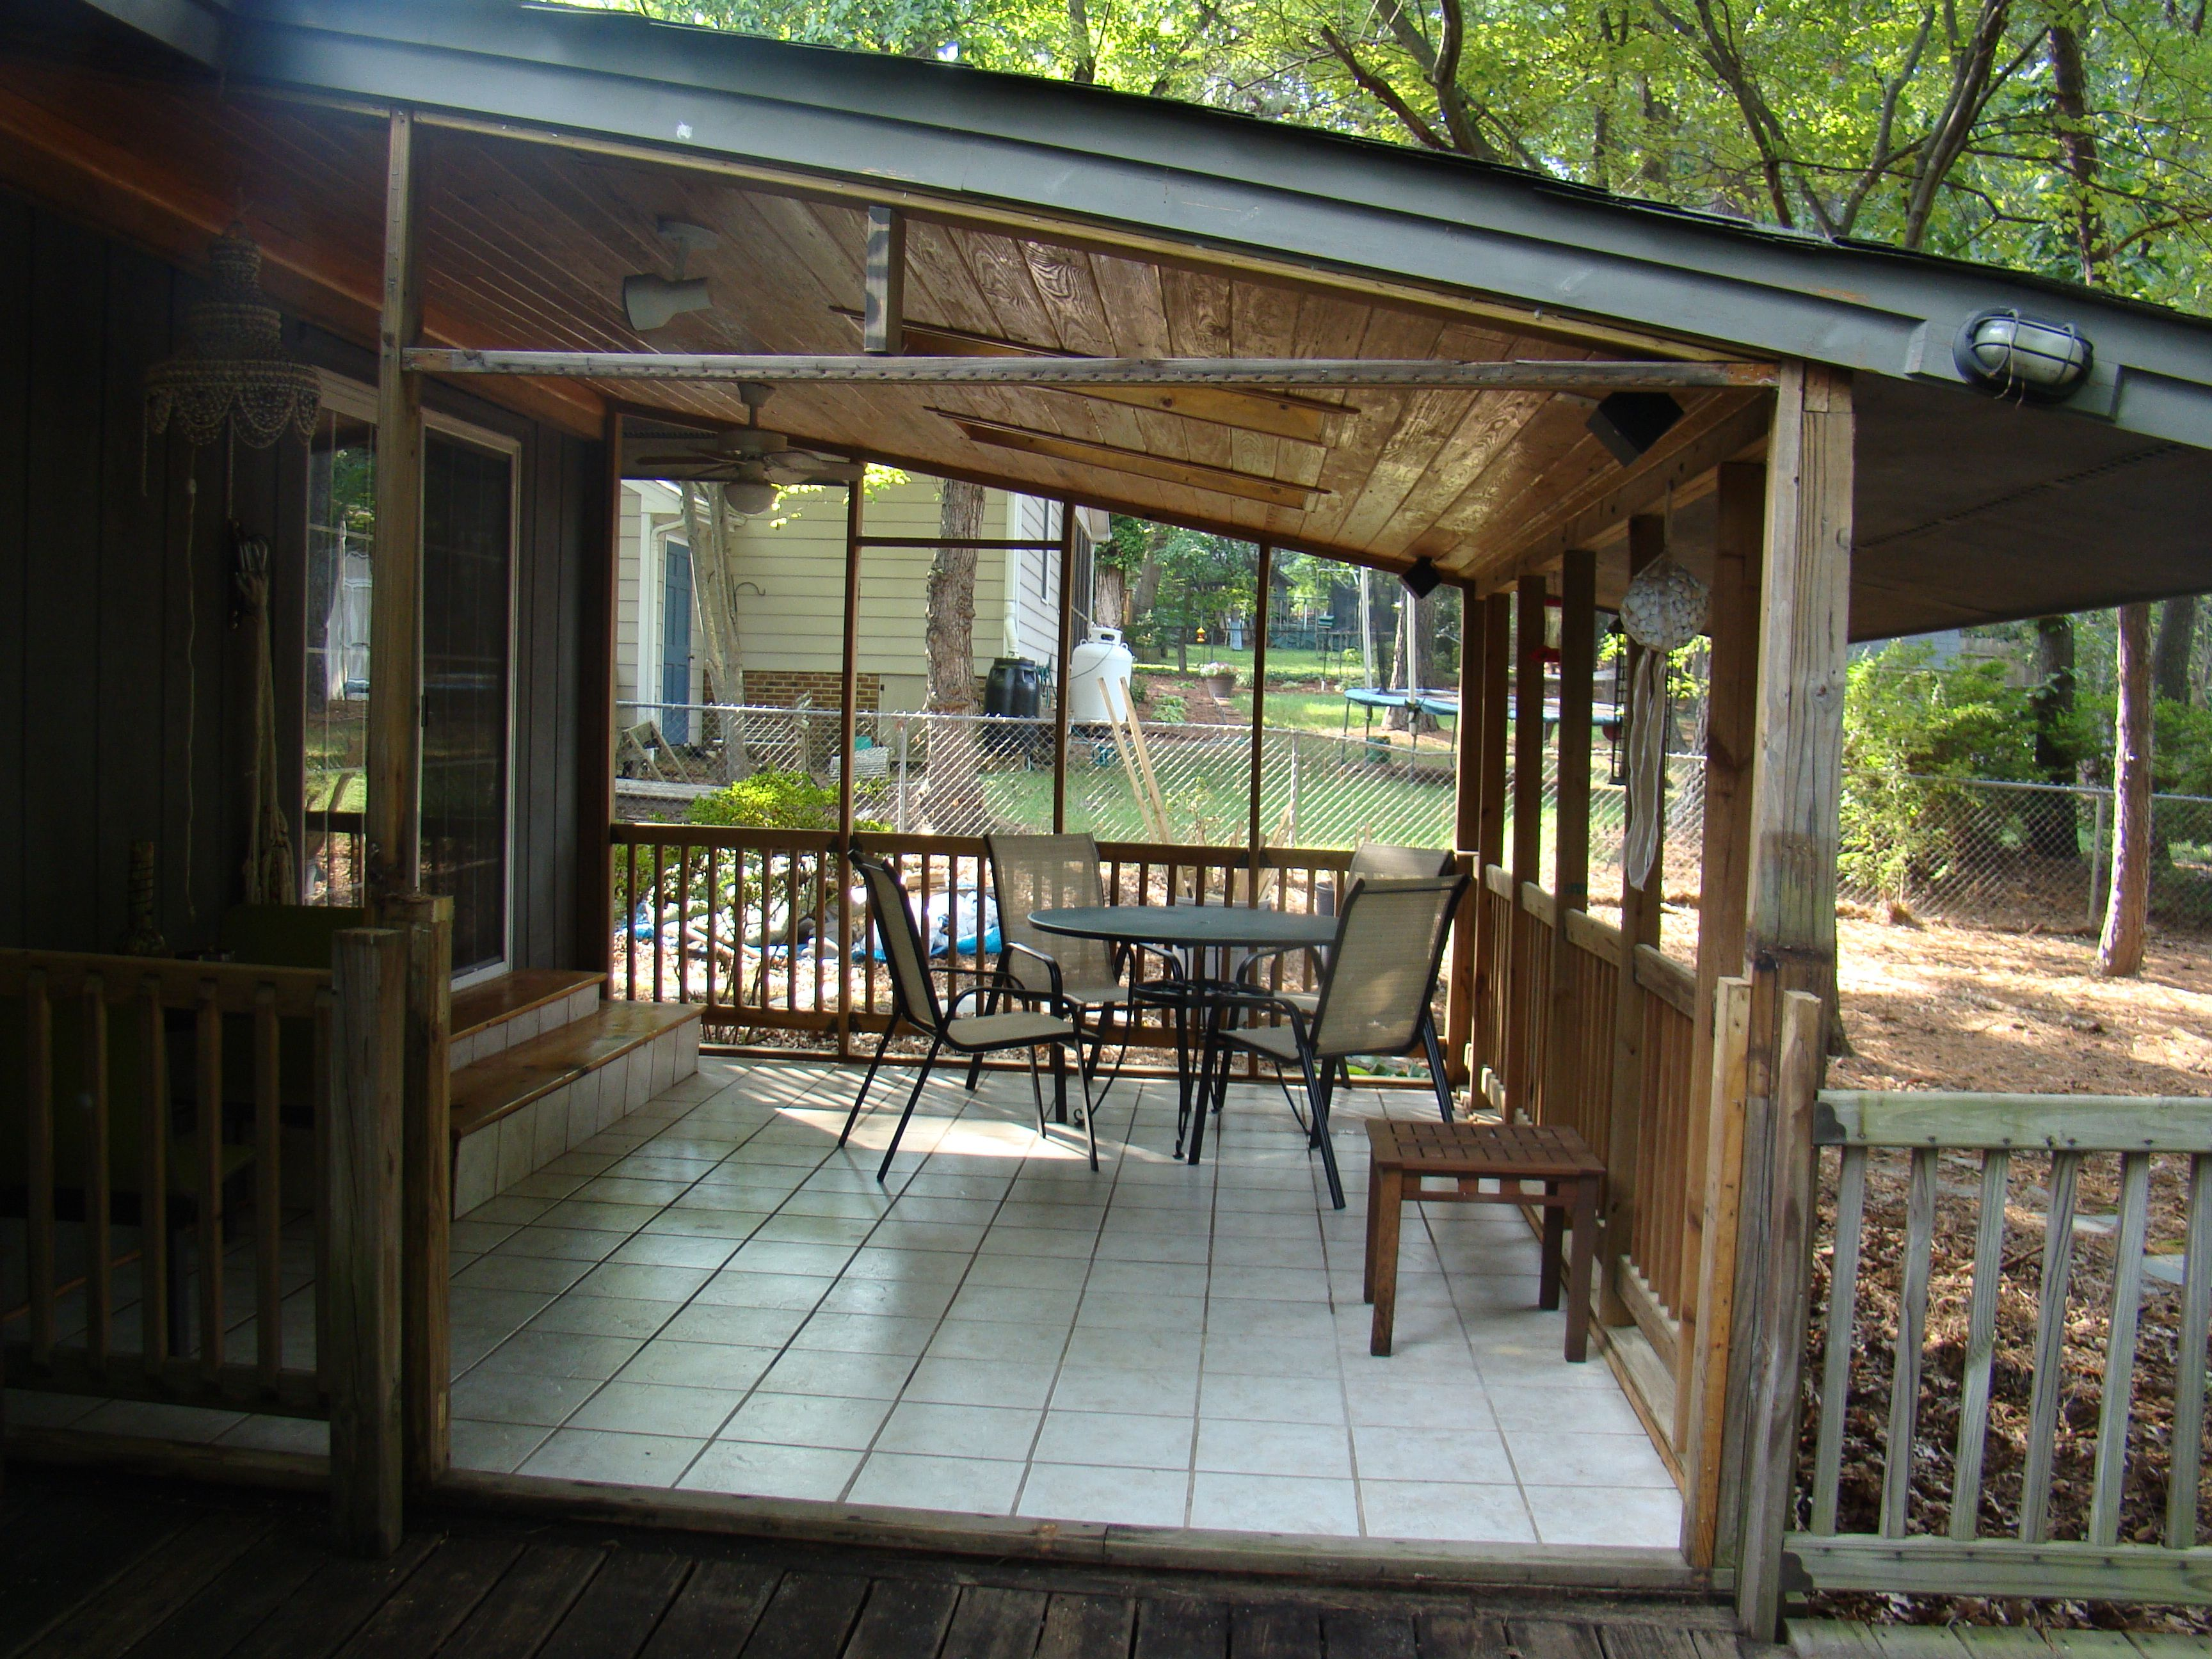 Back Porch Ideas back porch ideas that will add value & appeal to your home | porch